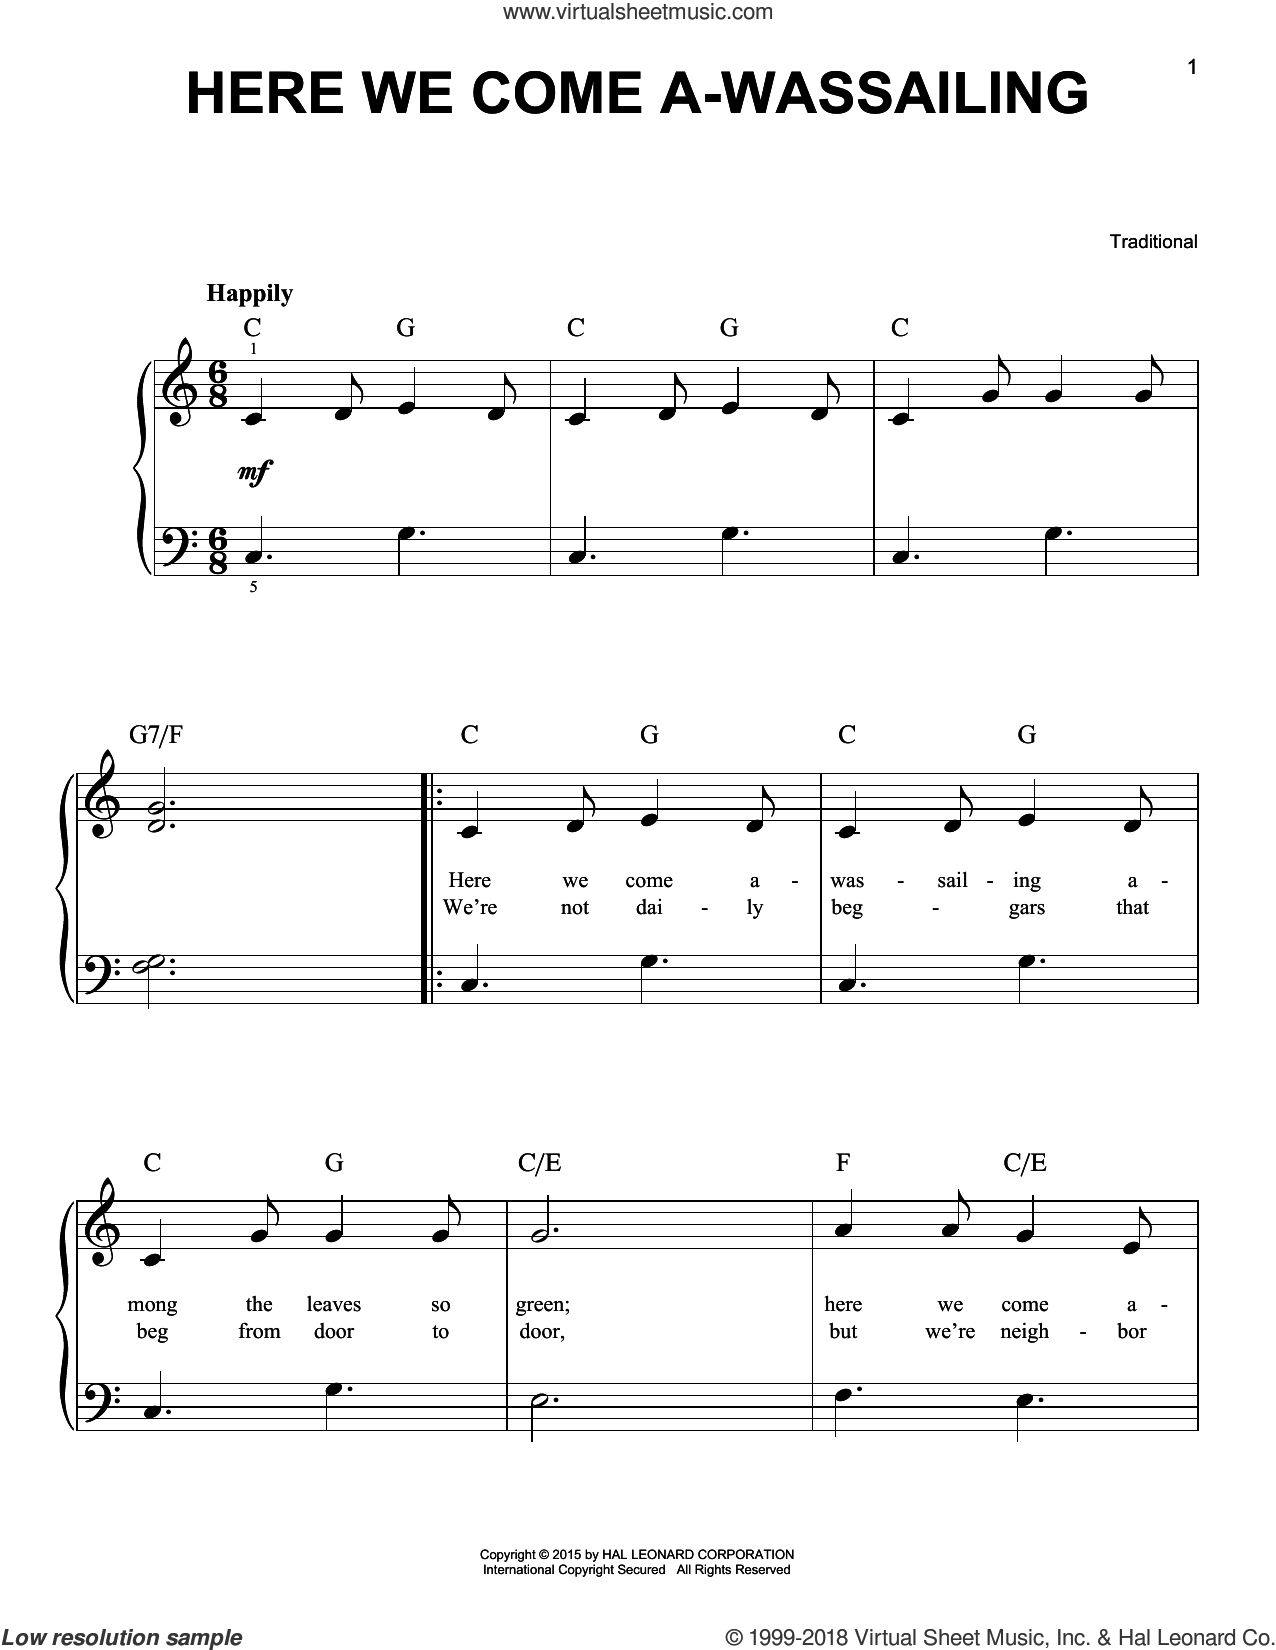 Here We Come A-Wassailing sheet music for piano solo, beginner skill level